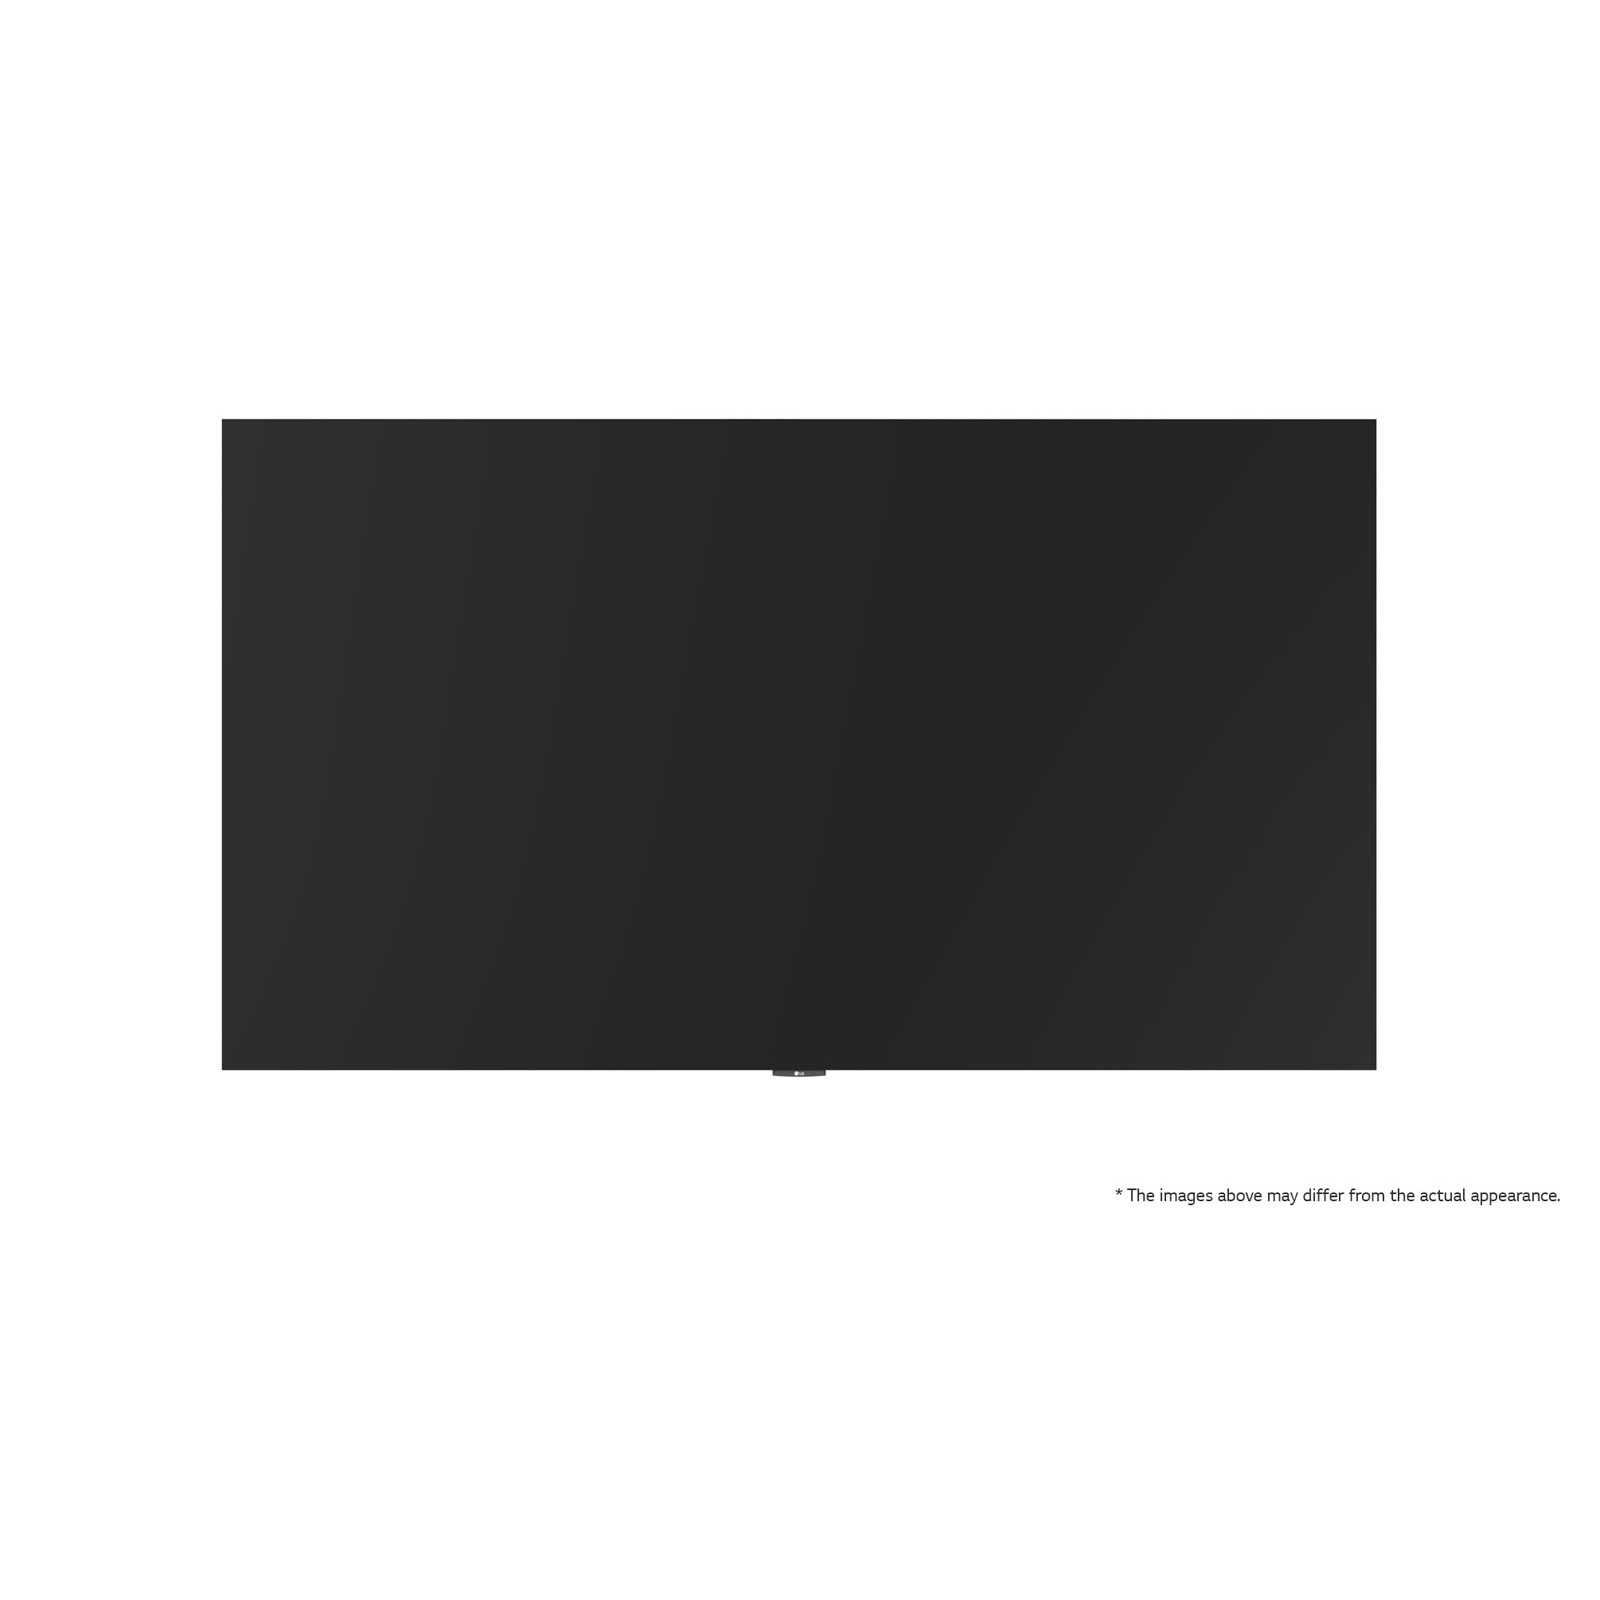 LG LAEB015 LED All-in-One Essential Series Videowall